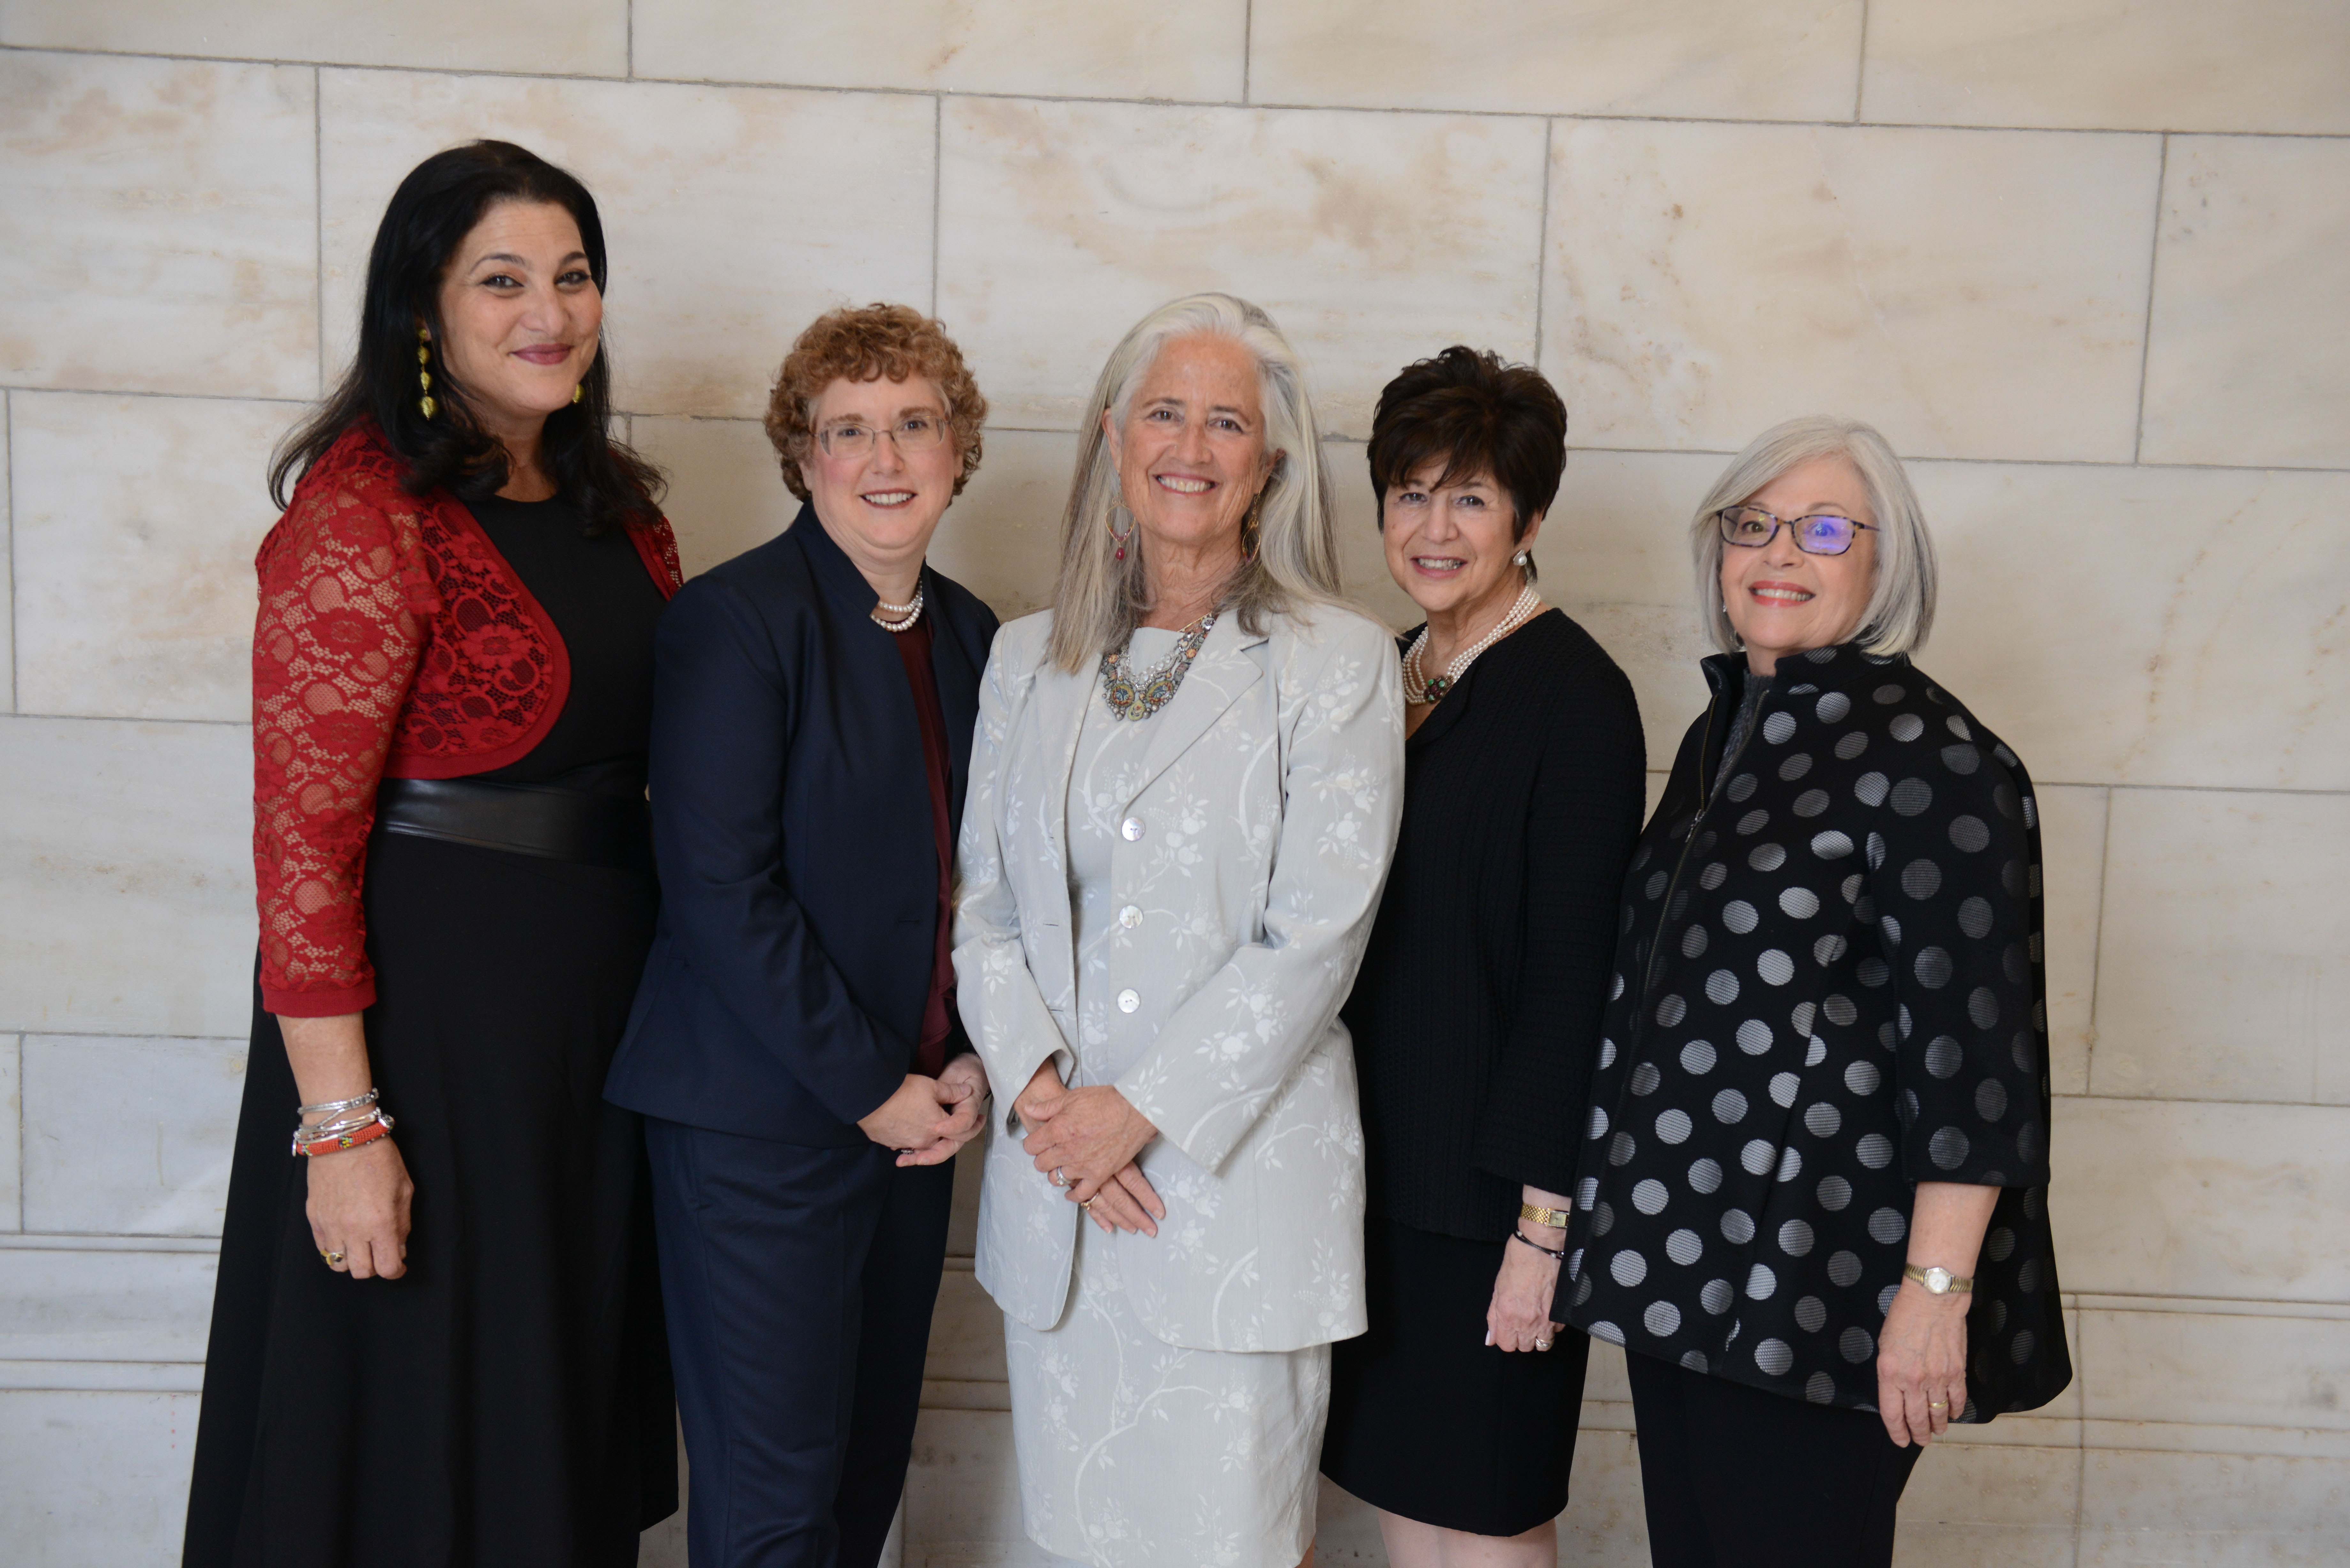 The 2018 Covenant Award Recipients with Covenant Executive Director Harlene Appelman and Covenant Board Chair Cheryl Finkel. From left: Naomi Ackerman, Dr. Susie Tanchel, Deborah Newbrun, Harlene Appelman, and Cheryl Finkel.